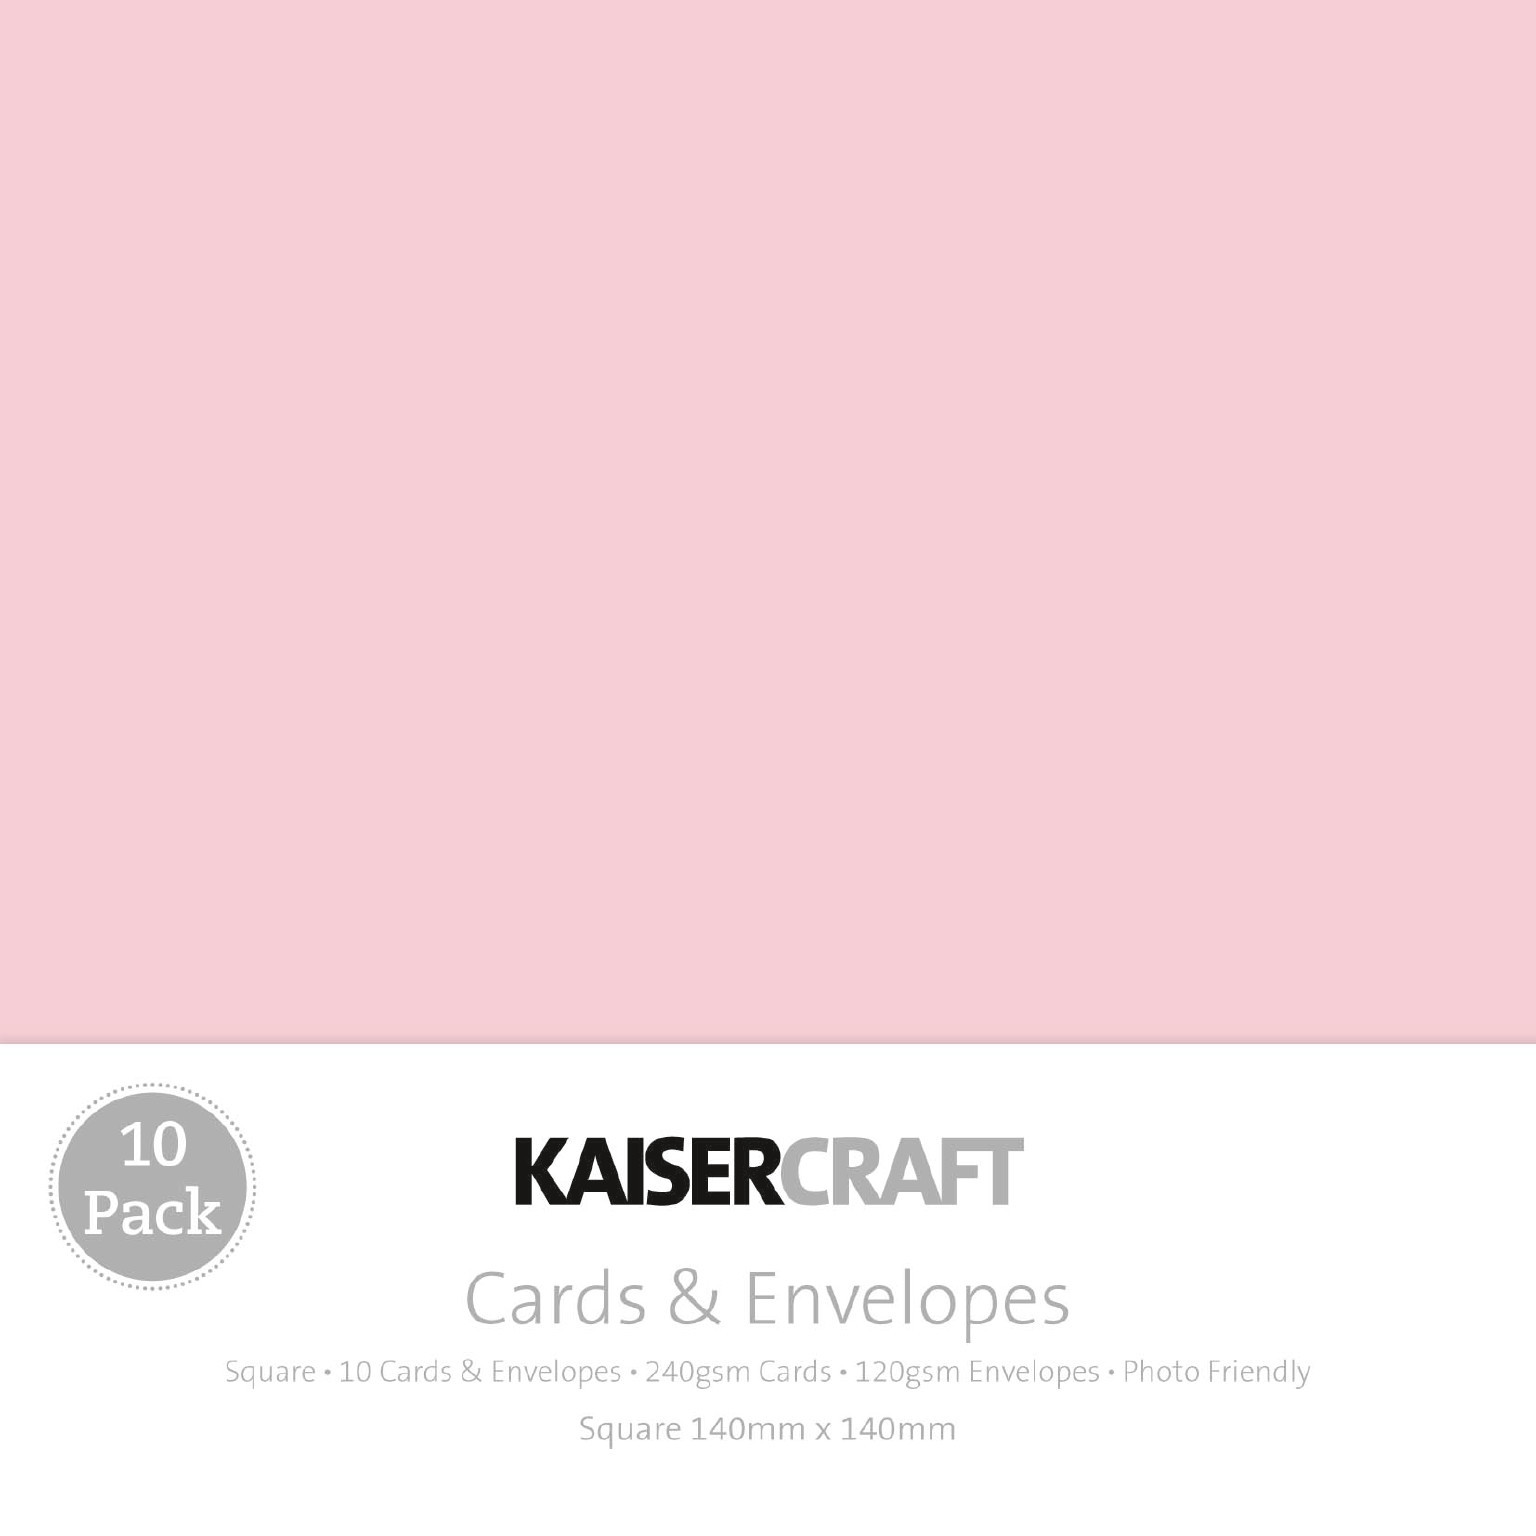 Kaisercraft: Square Card and Envelope 10 Pack - Pink image